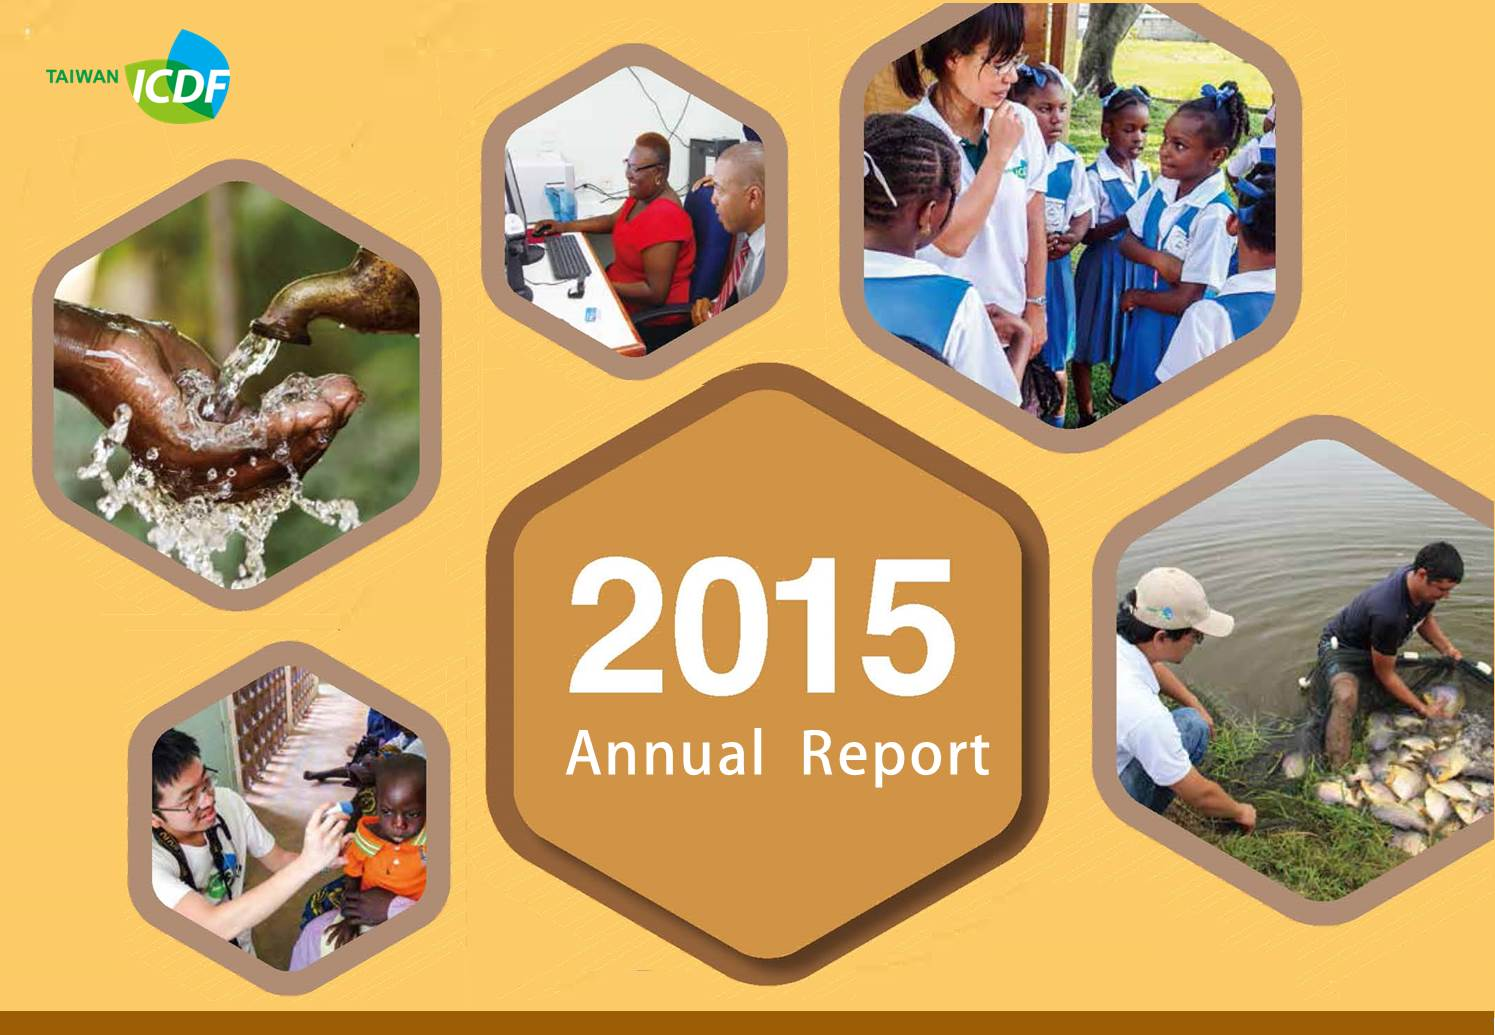 TaiwanICDF 2015 Annual Report in short video